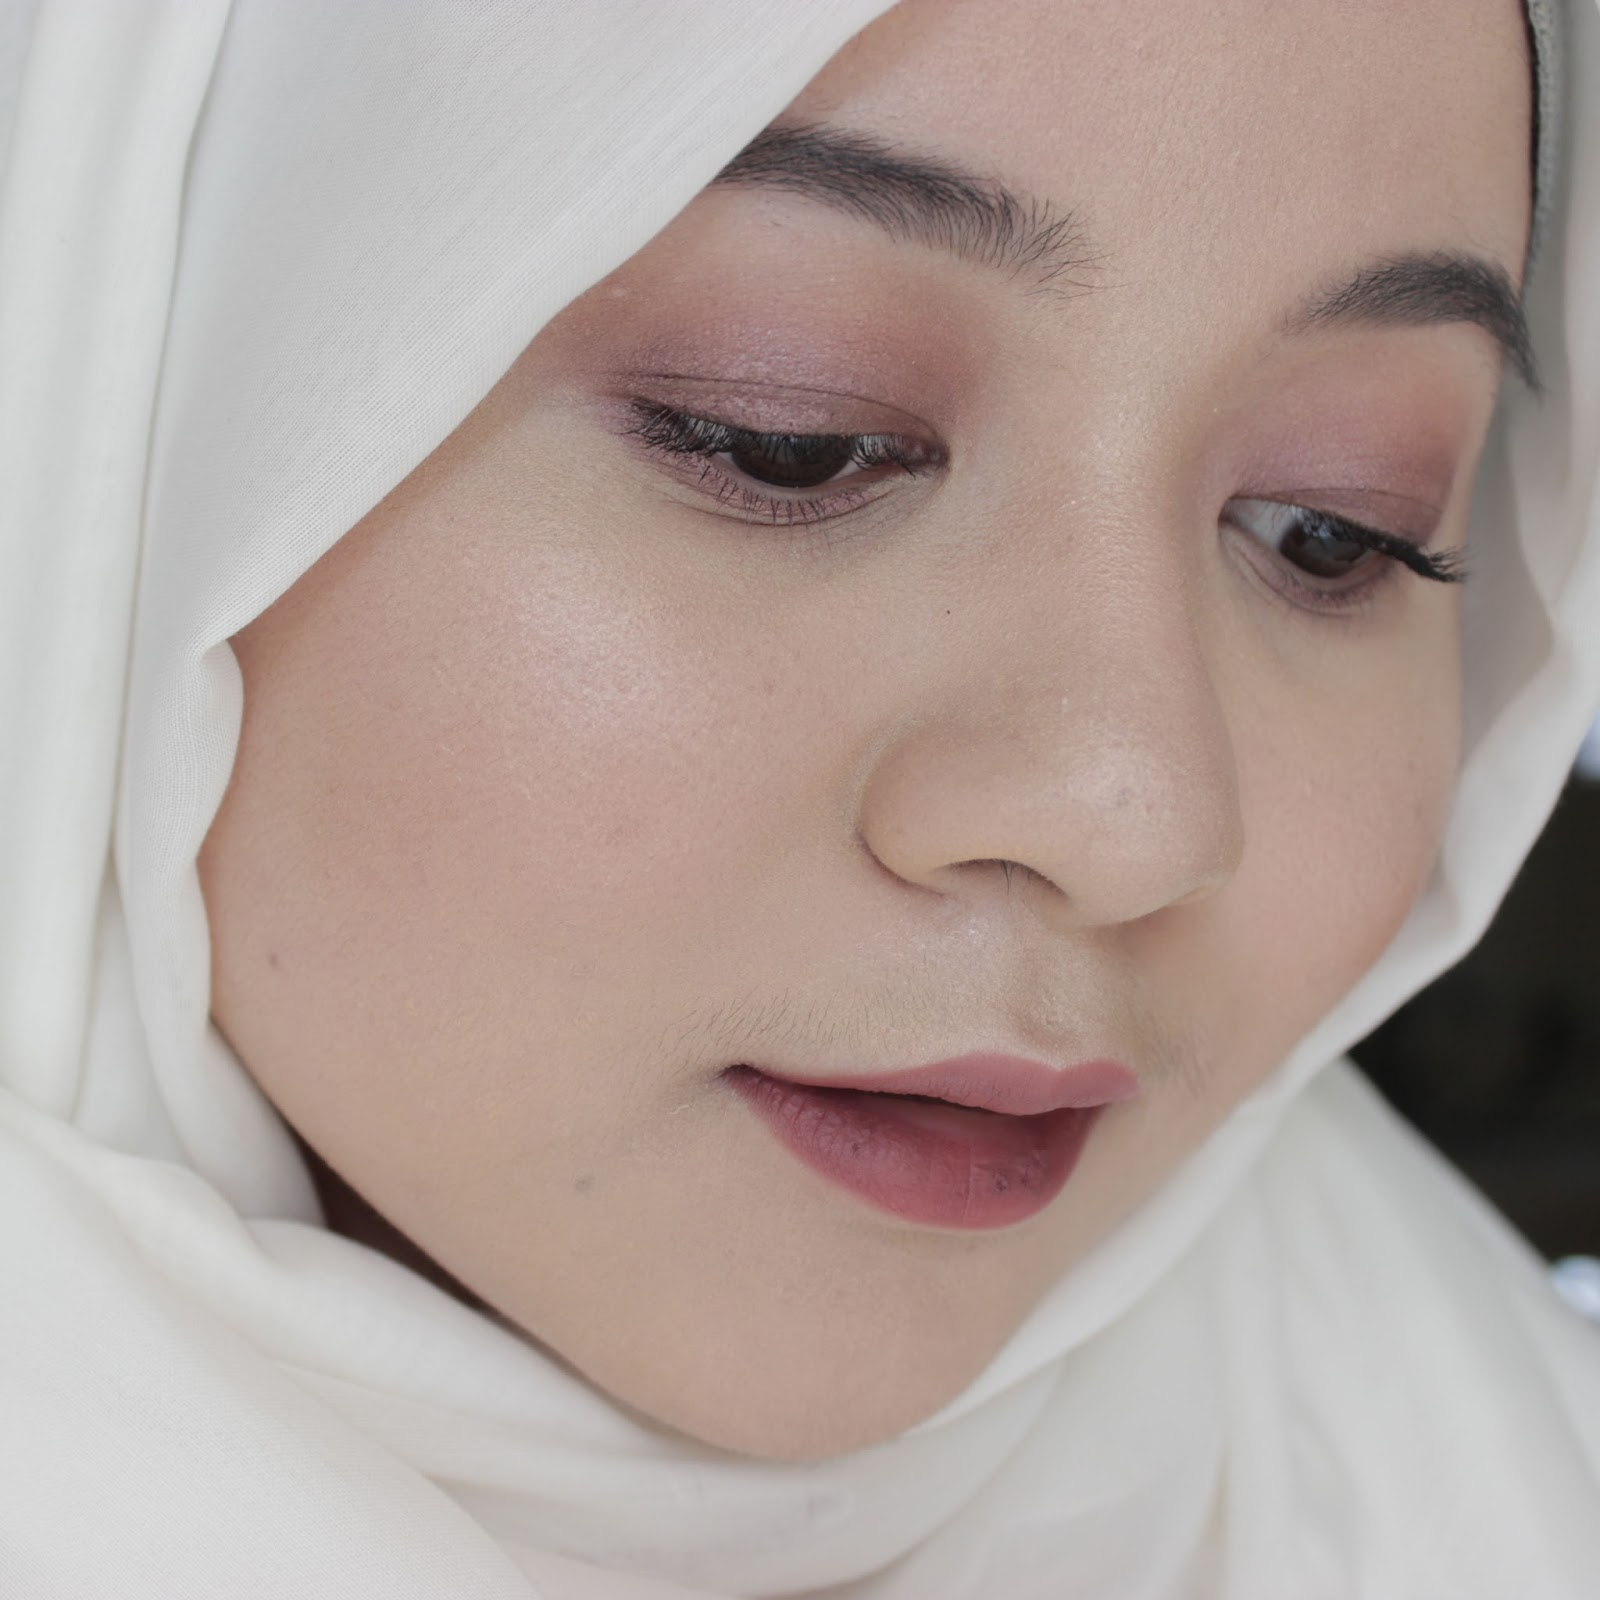 Bobbi Brown Long Wear Cream Shadow Stick In Dusty Mauve Review